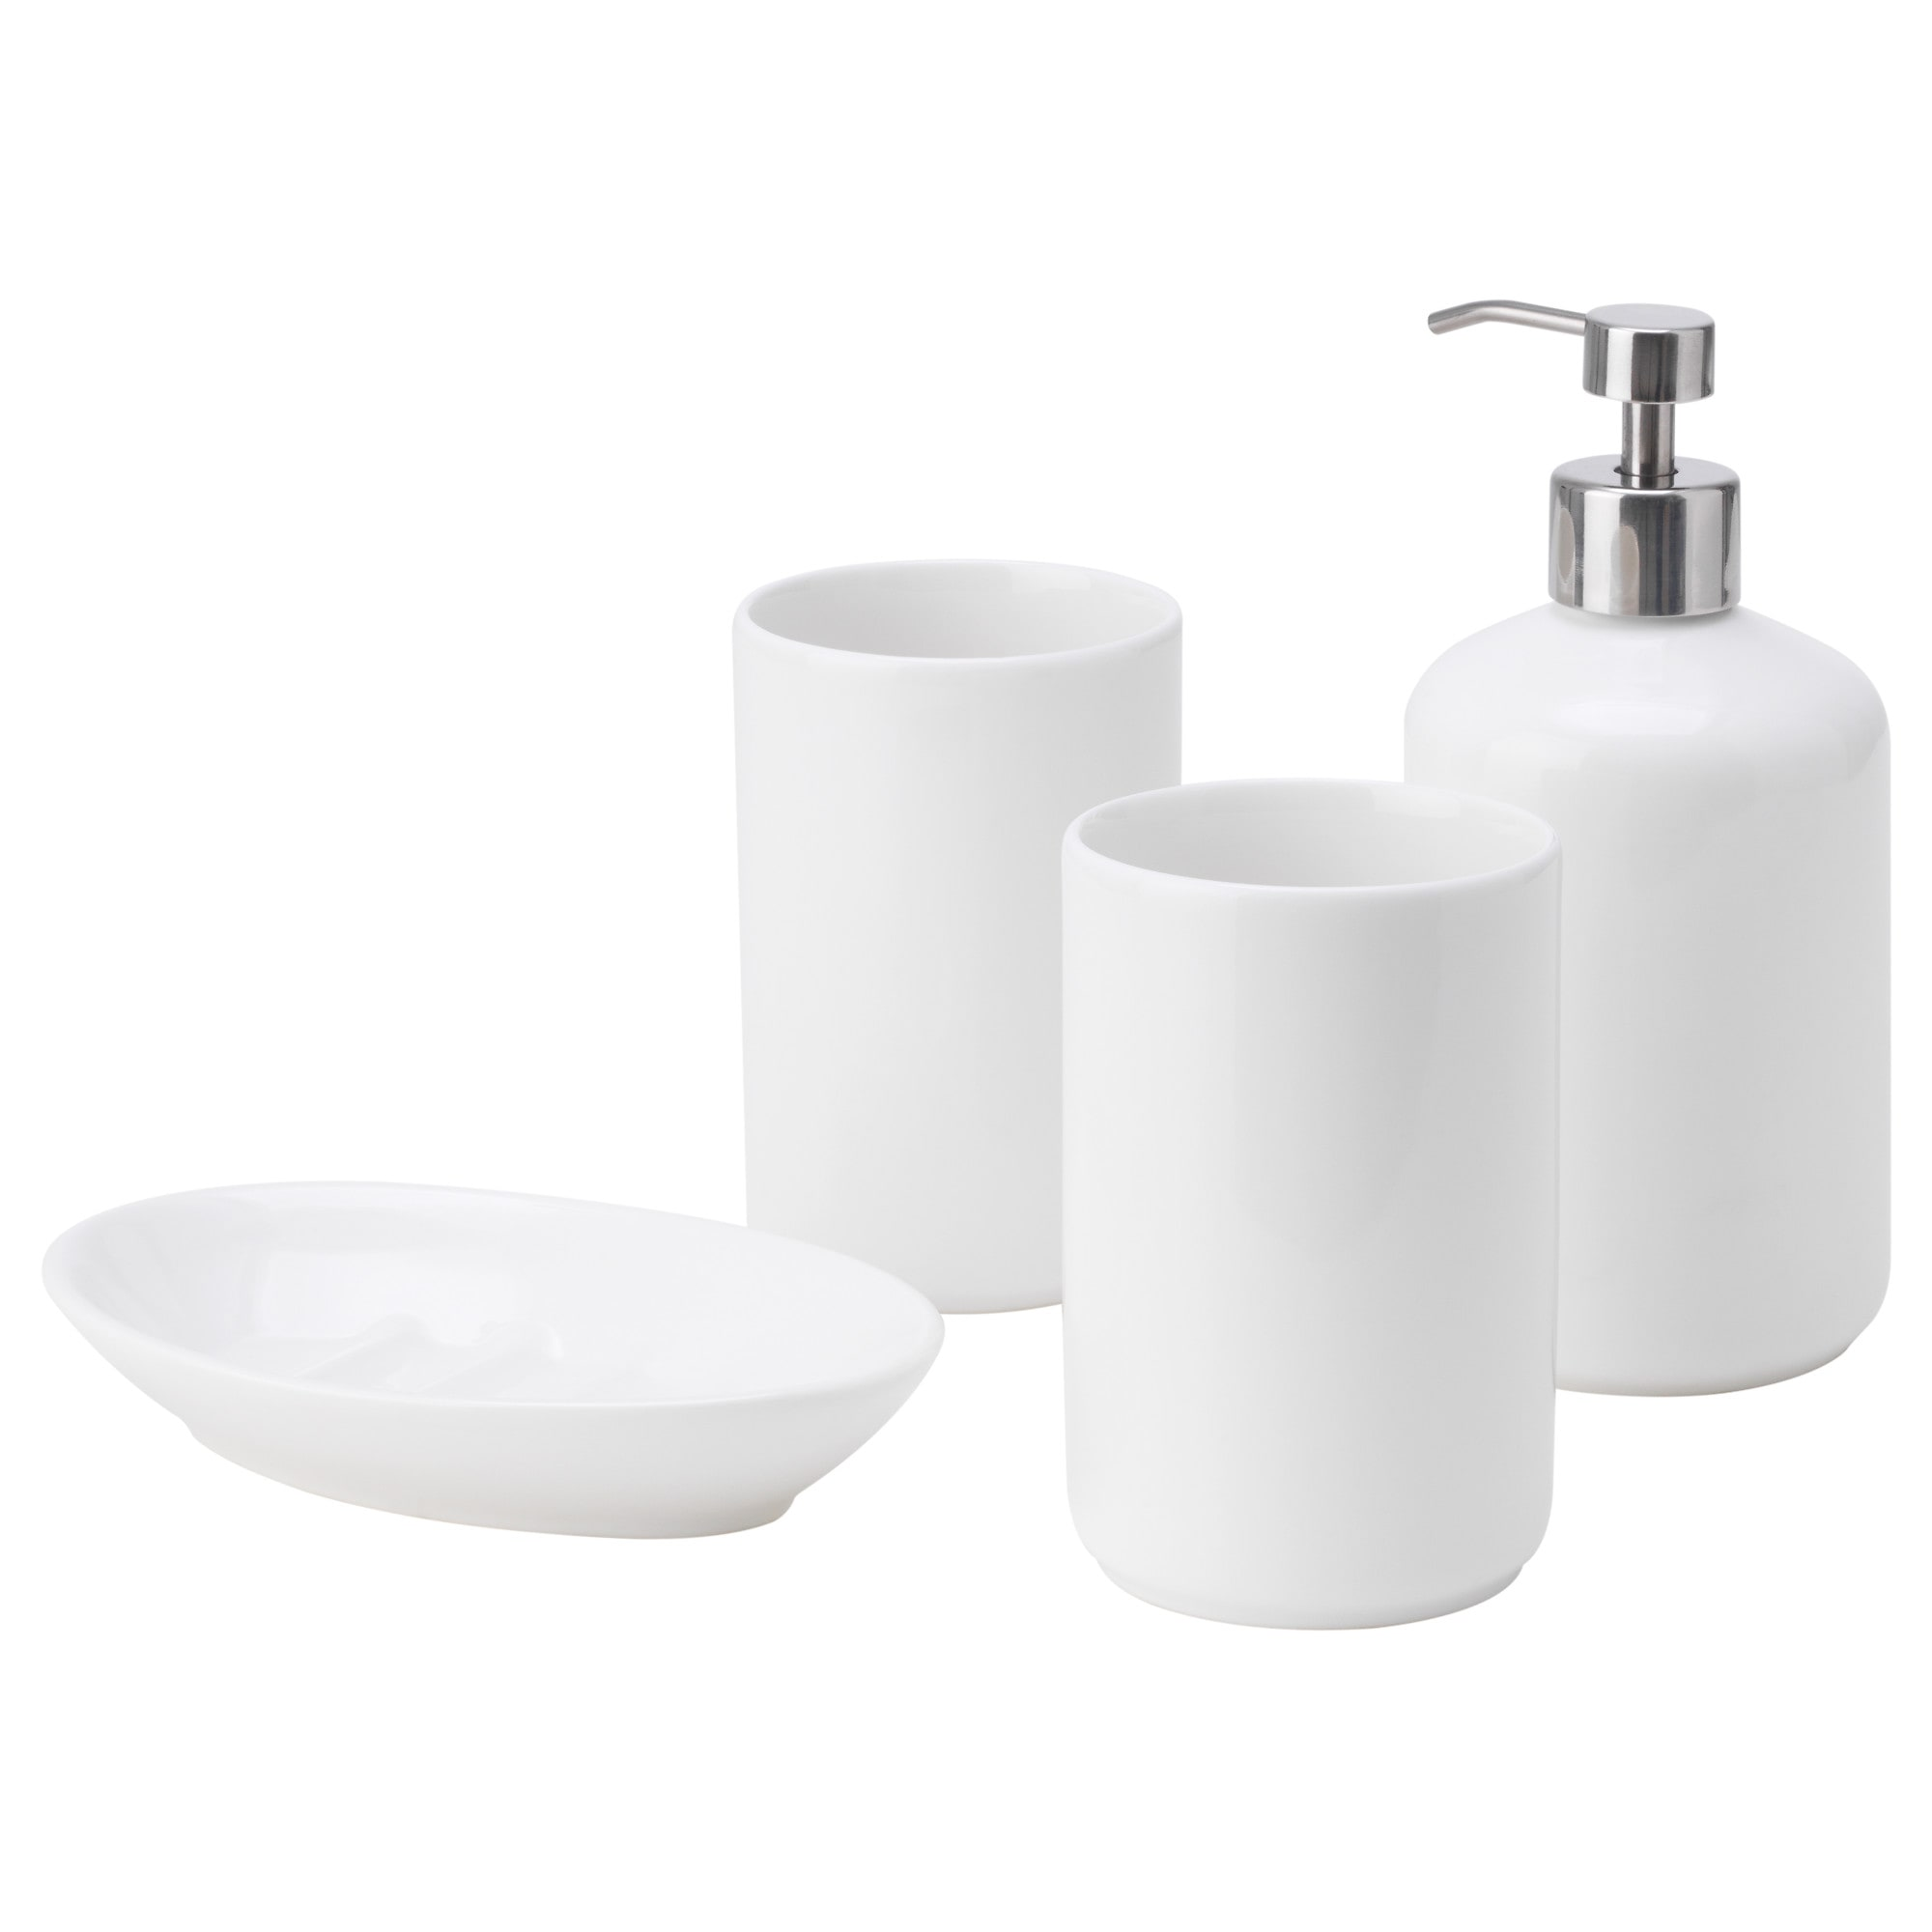 Bathroom Sink Accessories IKEA